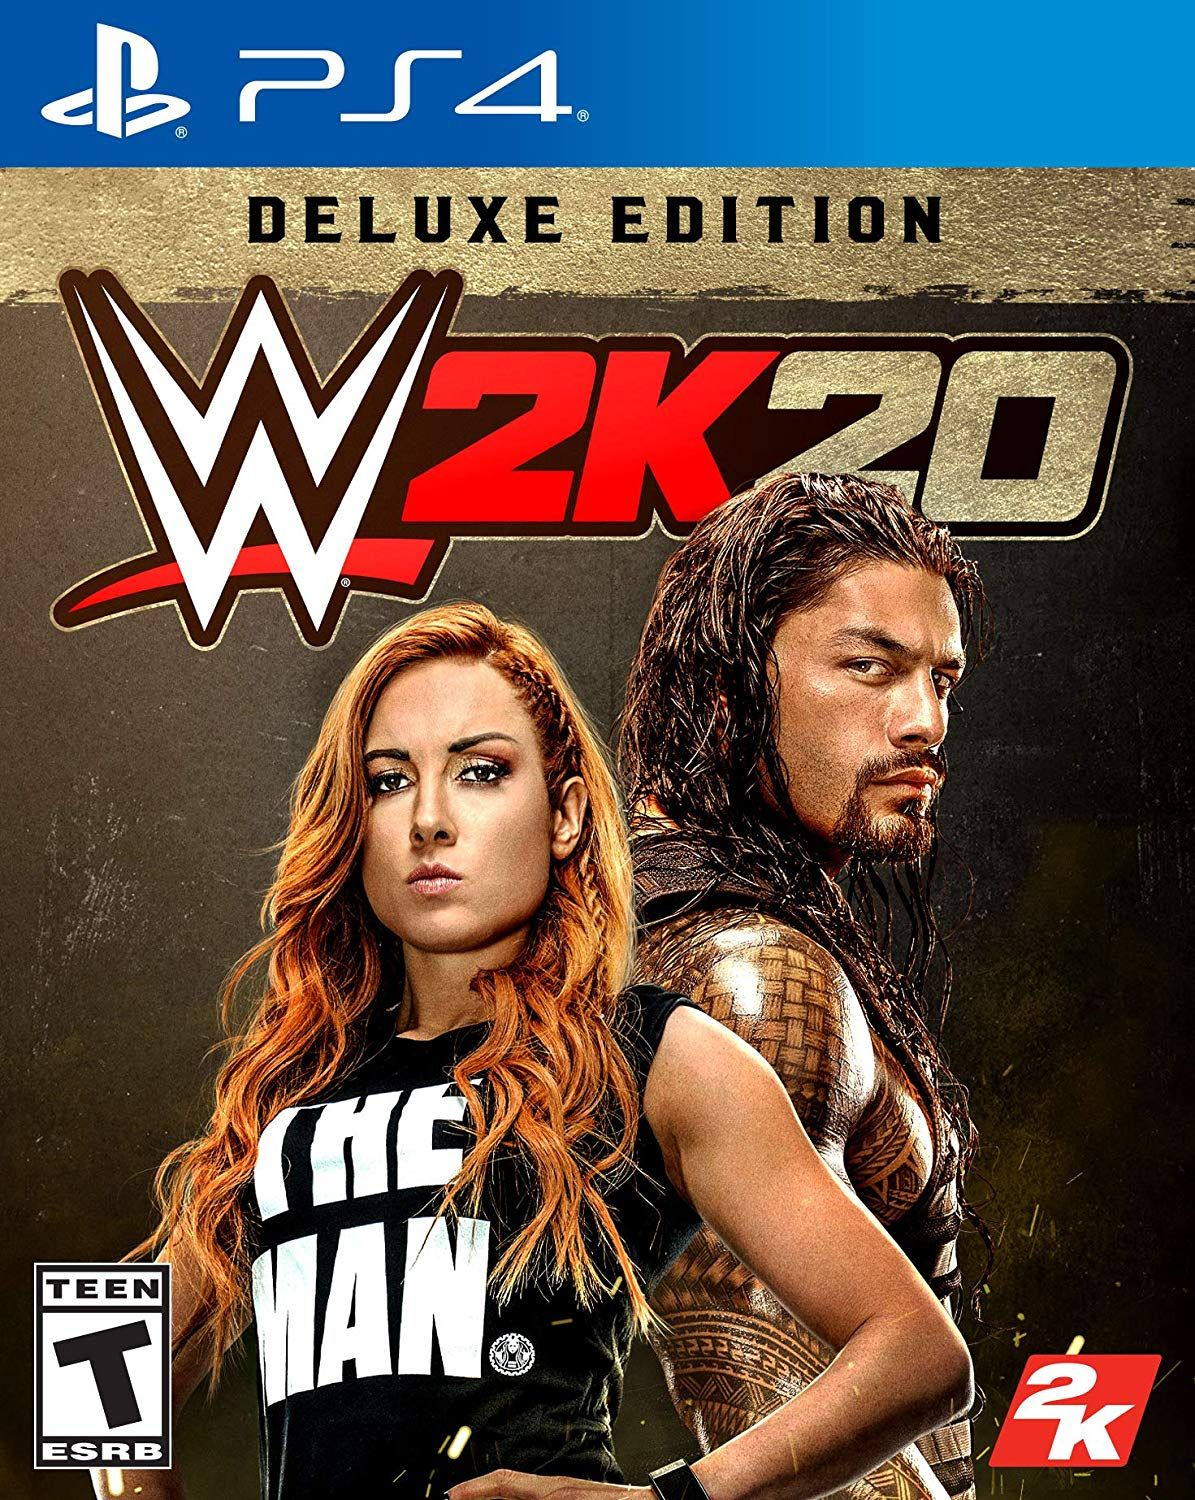 Wwe 2k20 Deluxe Edition Wwe Game Download Xbox One Games Wwe Game